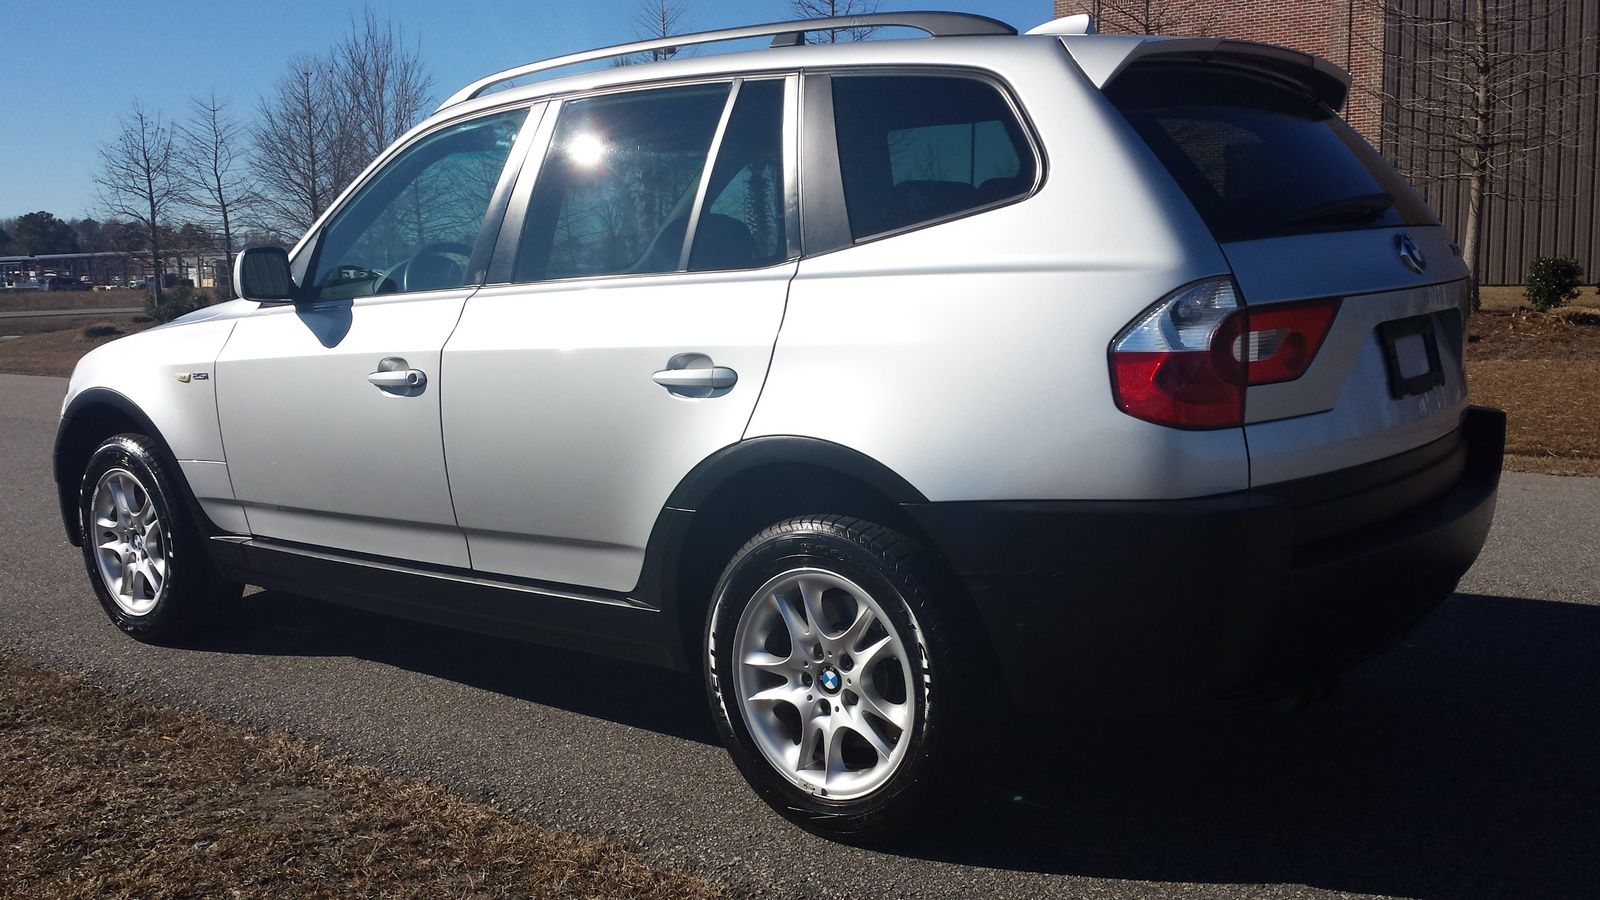 2004 Bmw X3 - Pictures